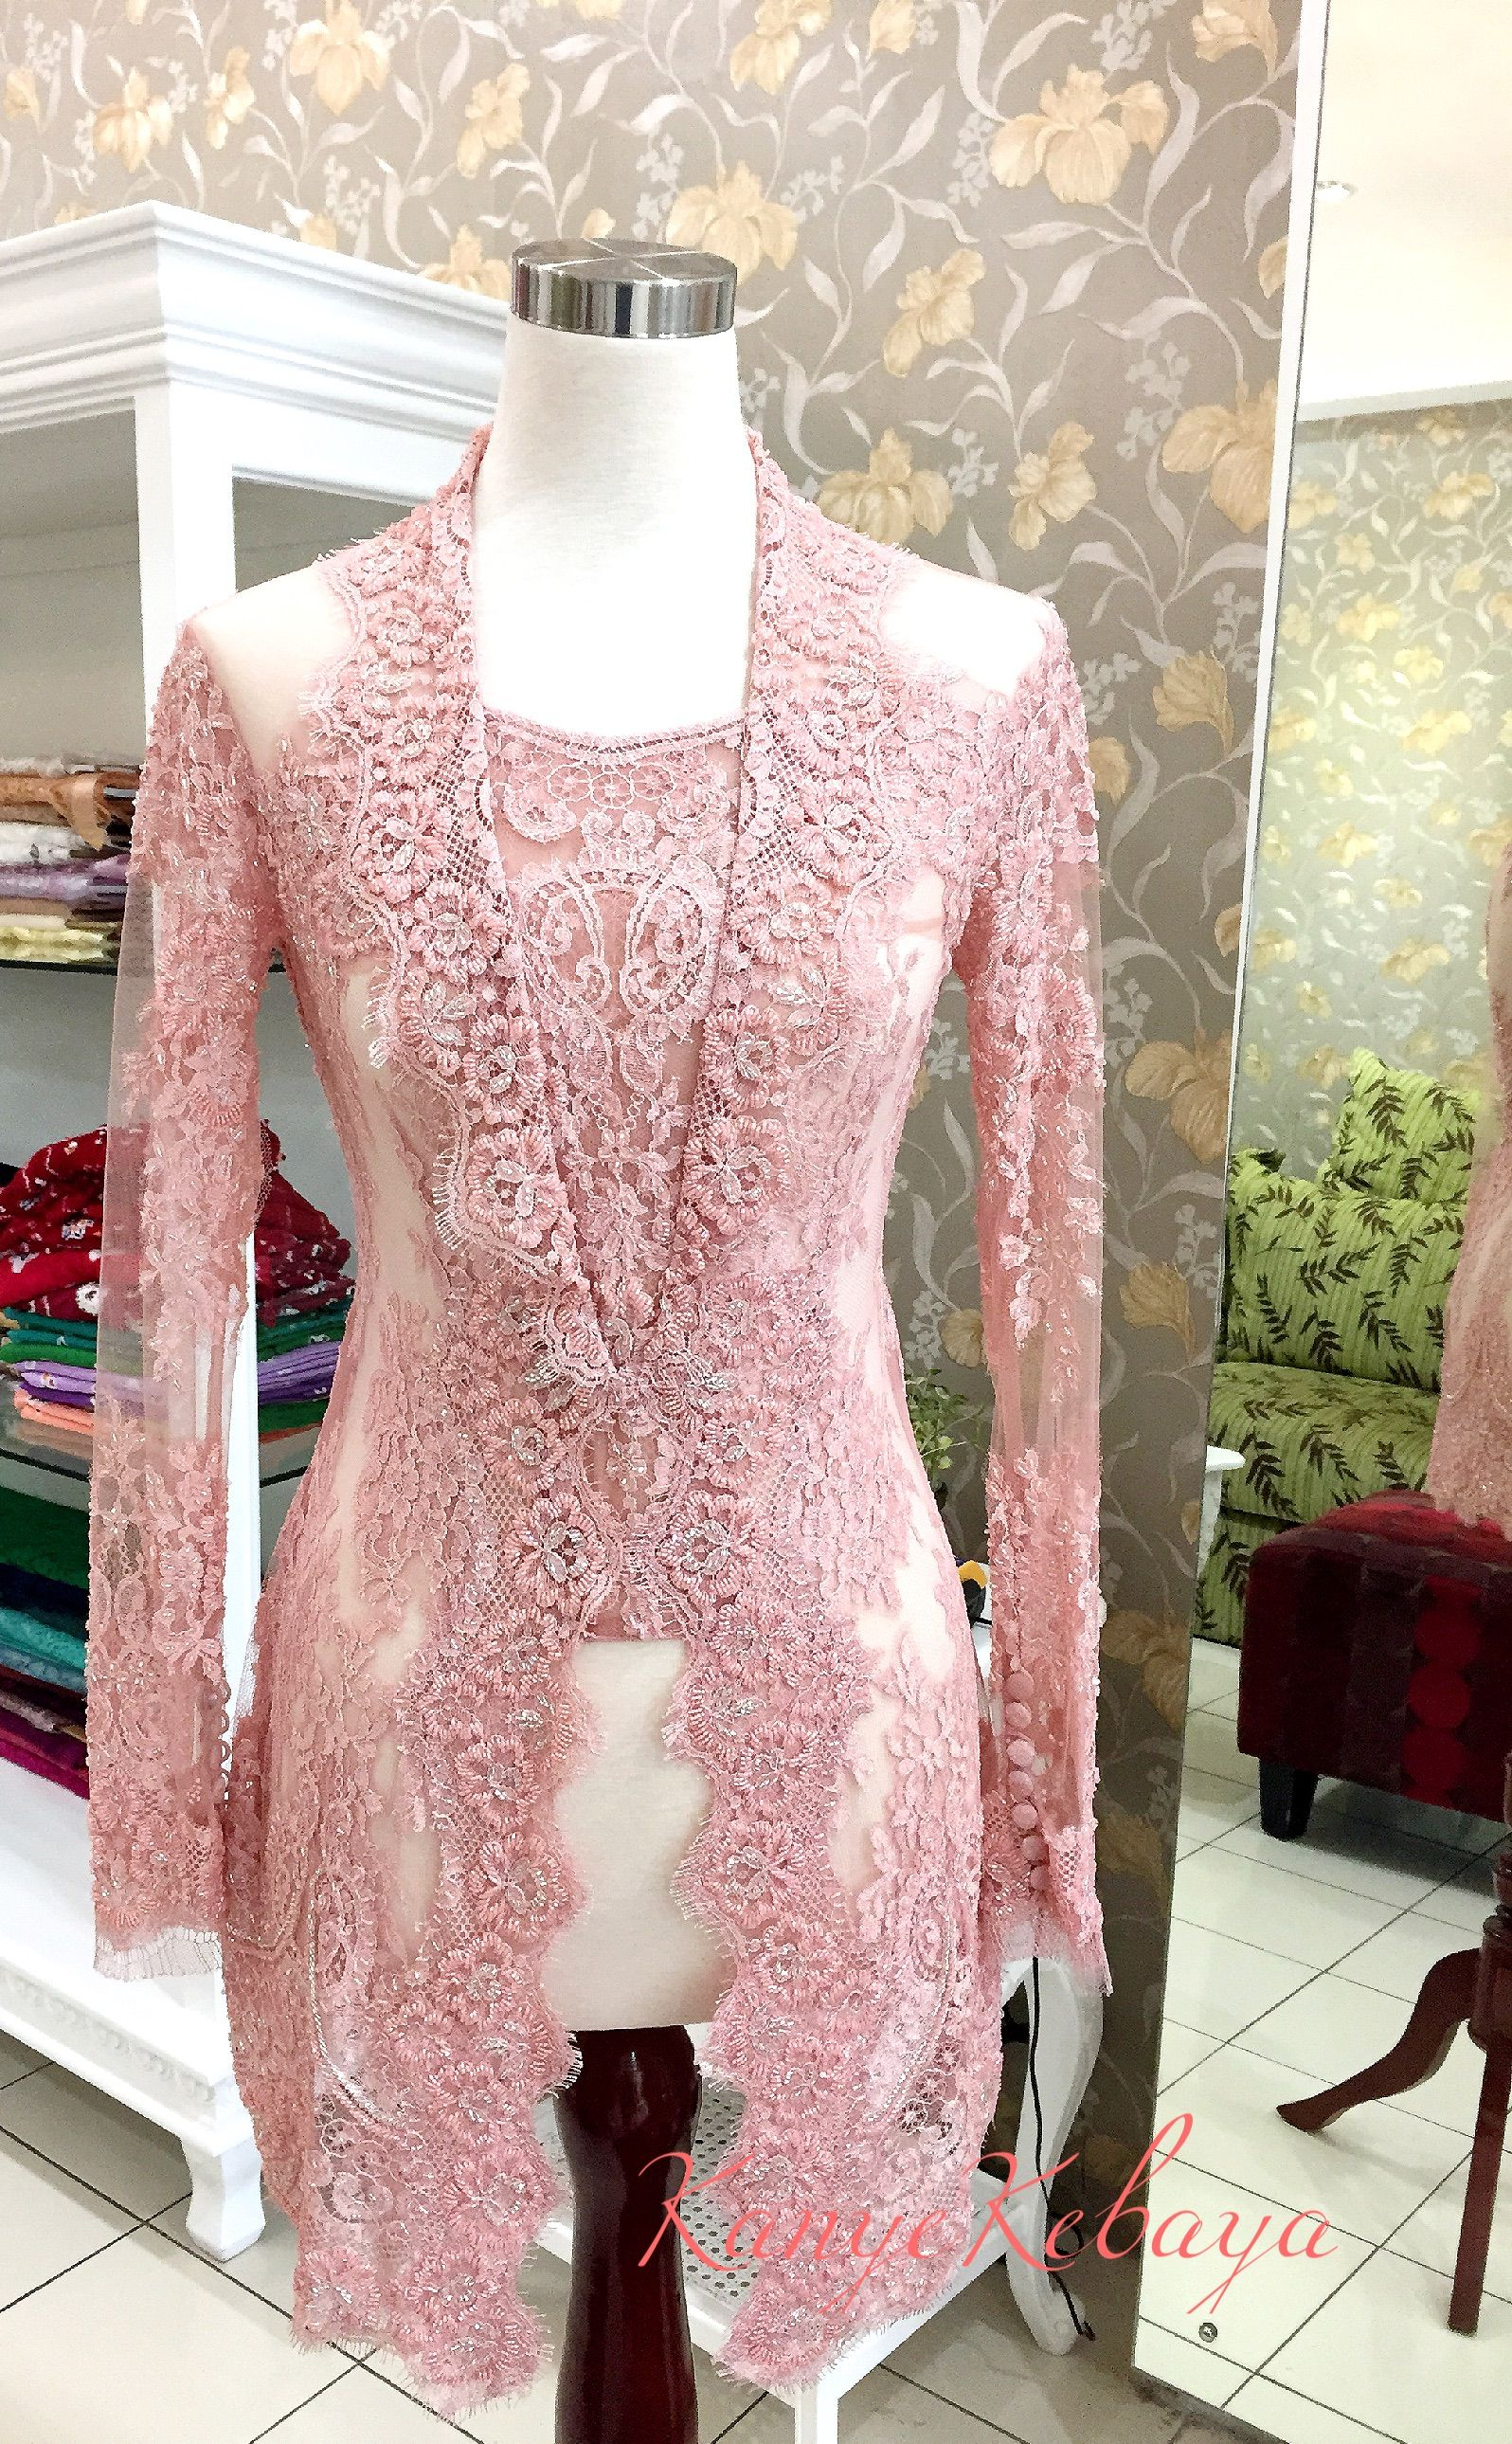 Kebaya  10+ ideas on Pinterest  batik kebaya, batik fashion